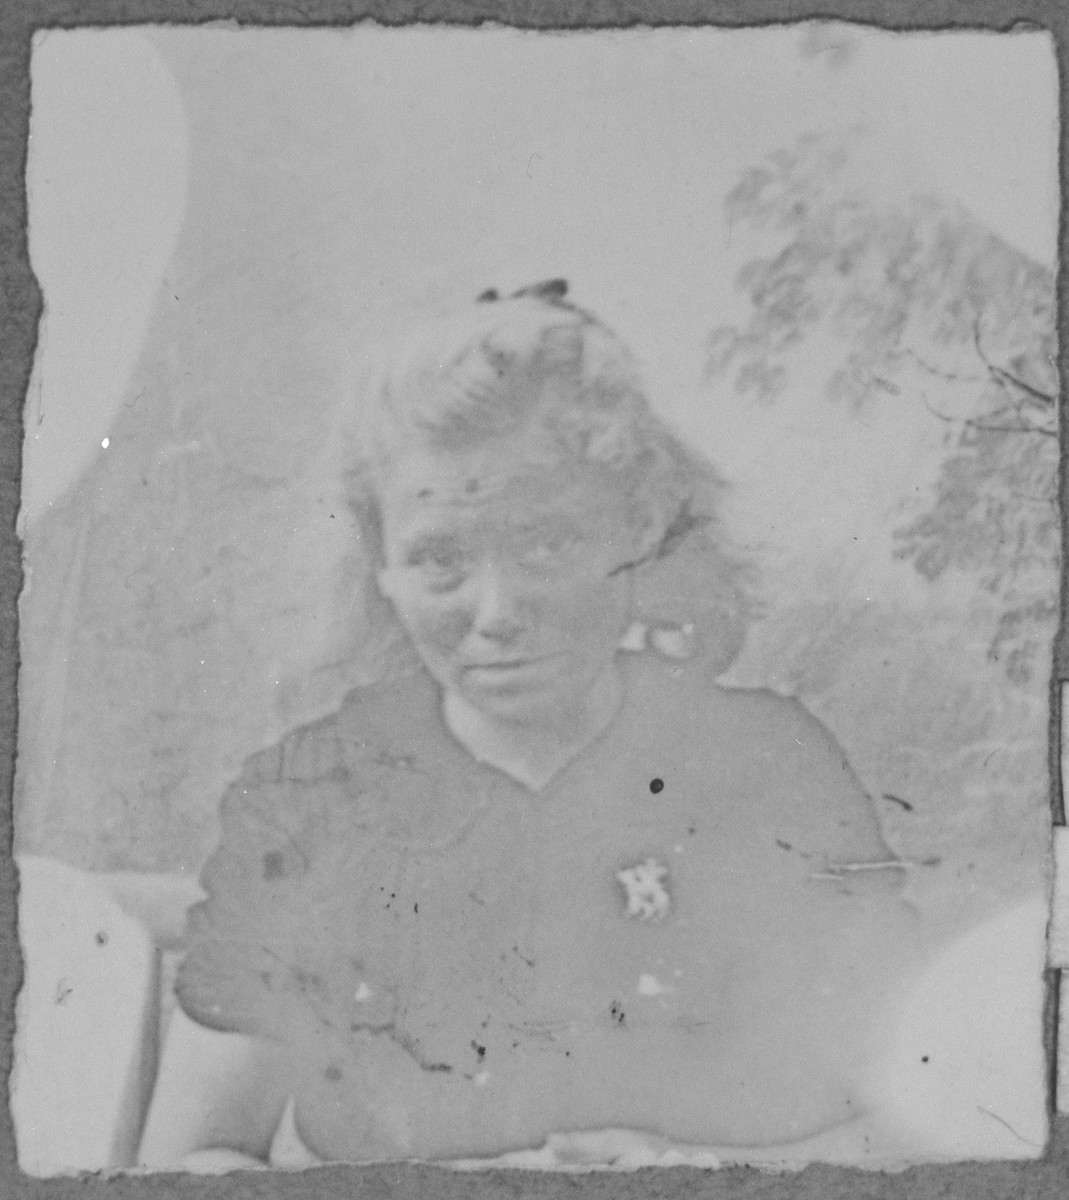 Portrait of Miriam Testa, [daughter of Moshe Testa].  She was a housemaid.  She lived at Drinska 119 in Bitola.